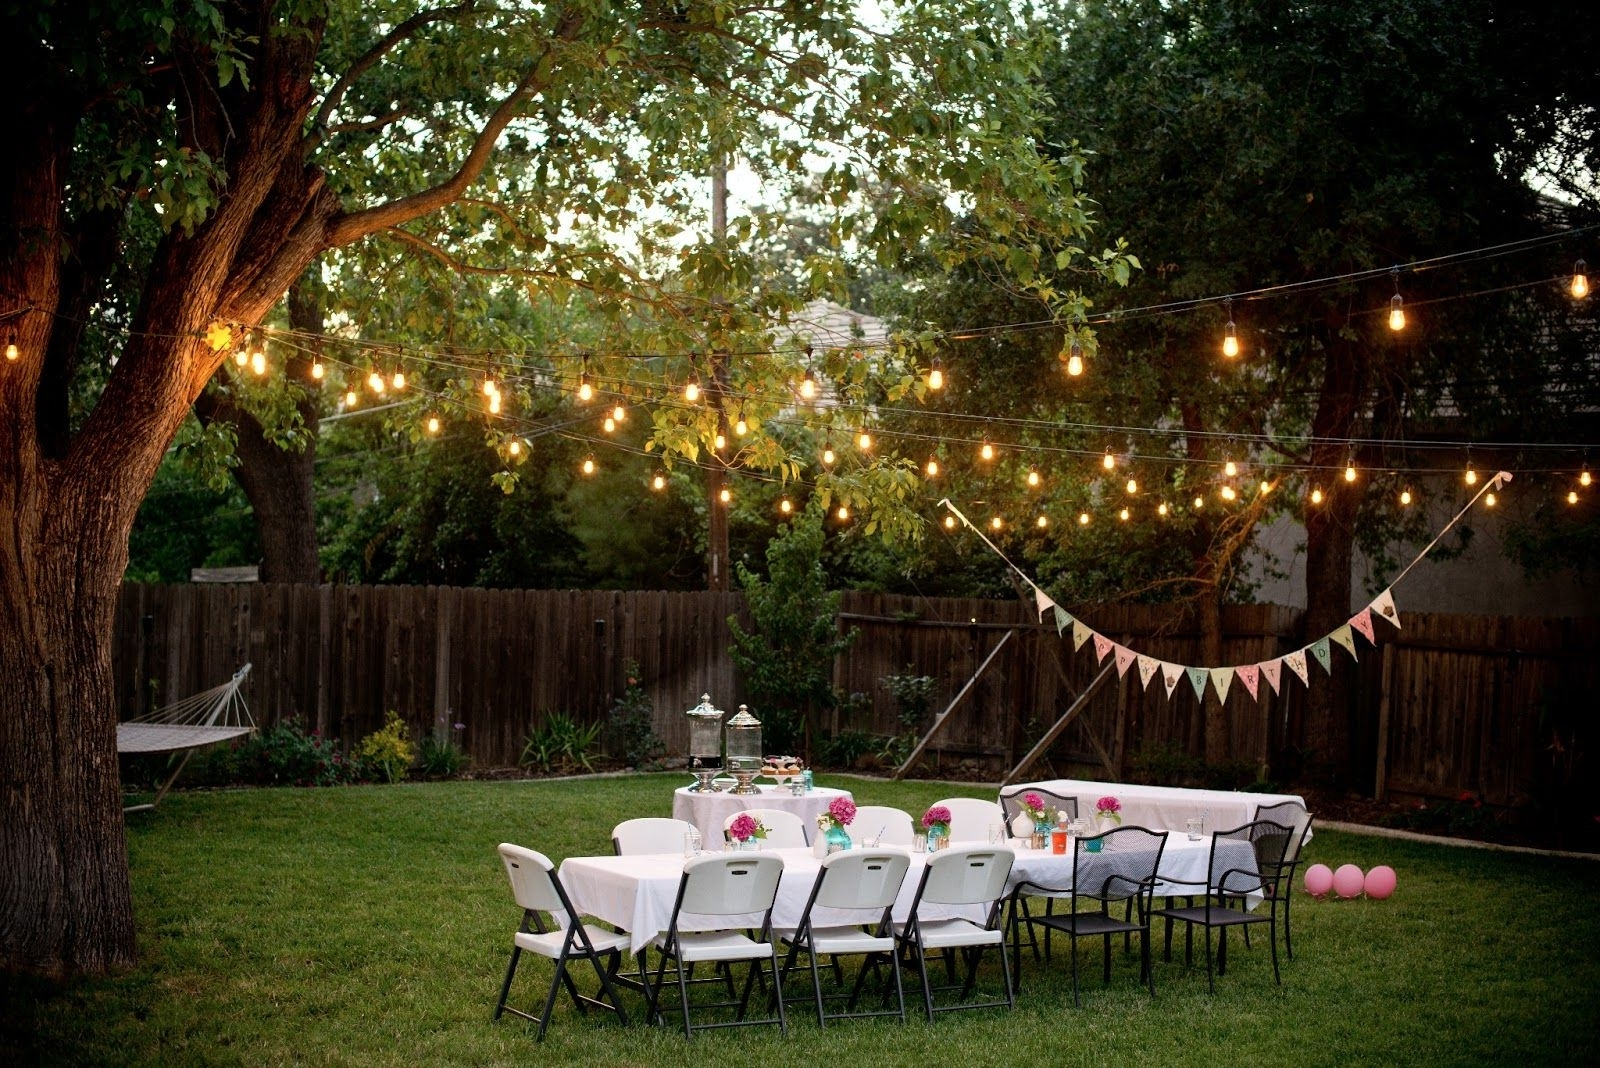 Modern Outdoor Patio String Lights : Outdoor Furniture – How To Make Within Most Up To Date Modern Outdoor String Lights (View 20 of 20)